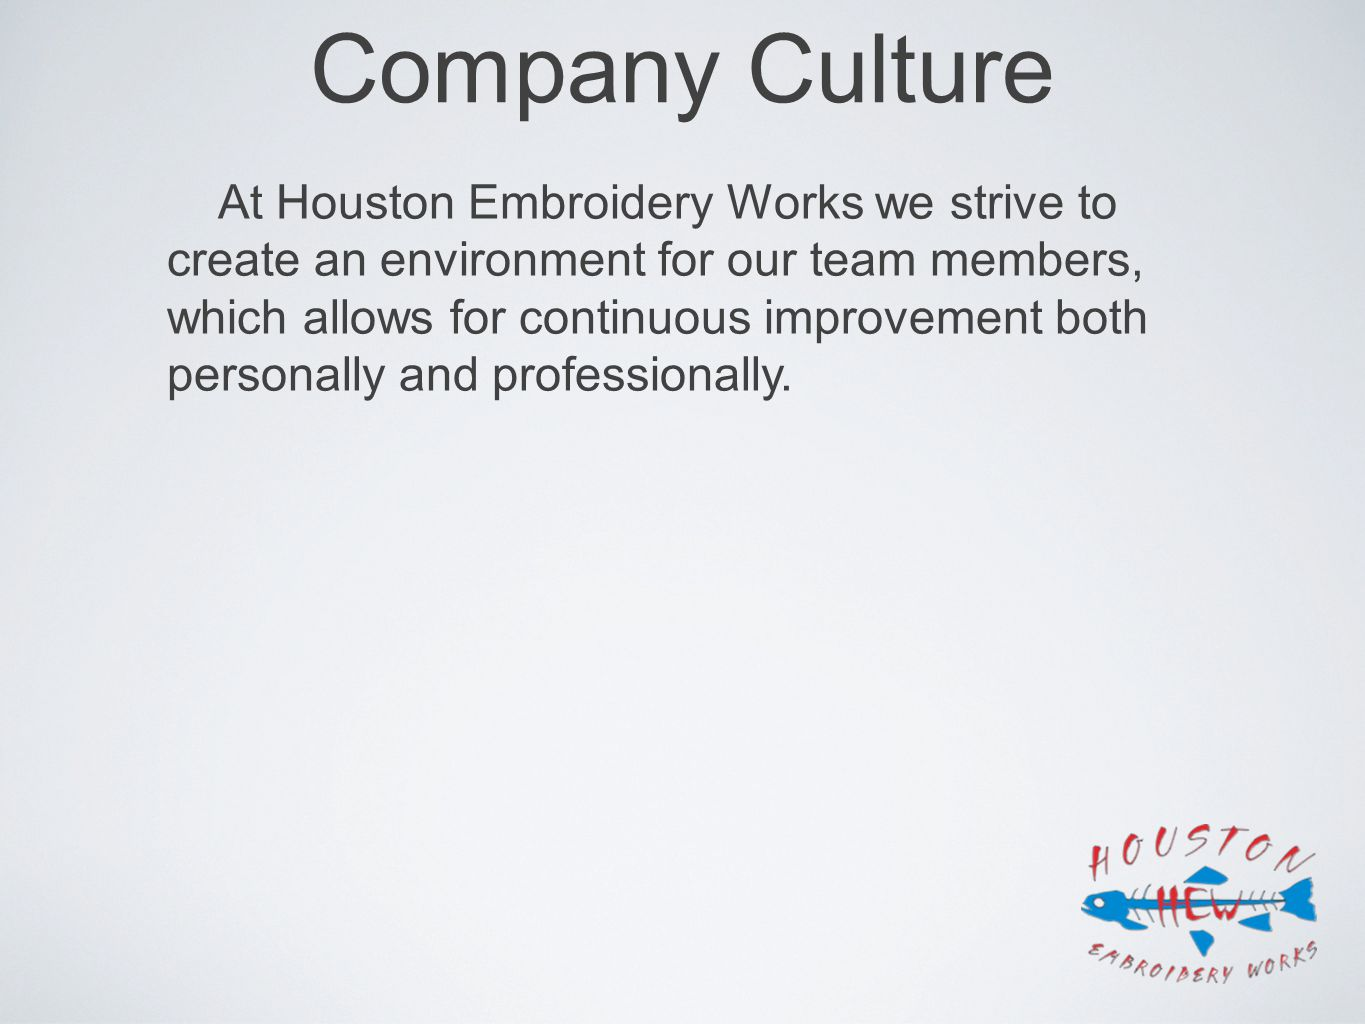 Company Culture At Houston Embroidery Works we strive to create an environment for our team members, which allows for continuous improvement both pers